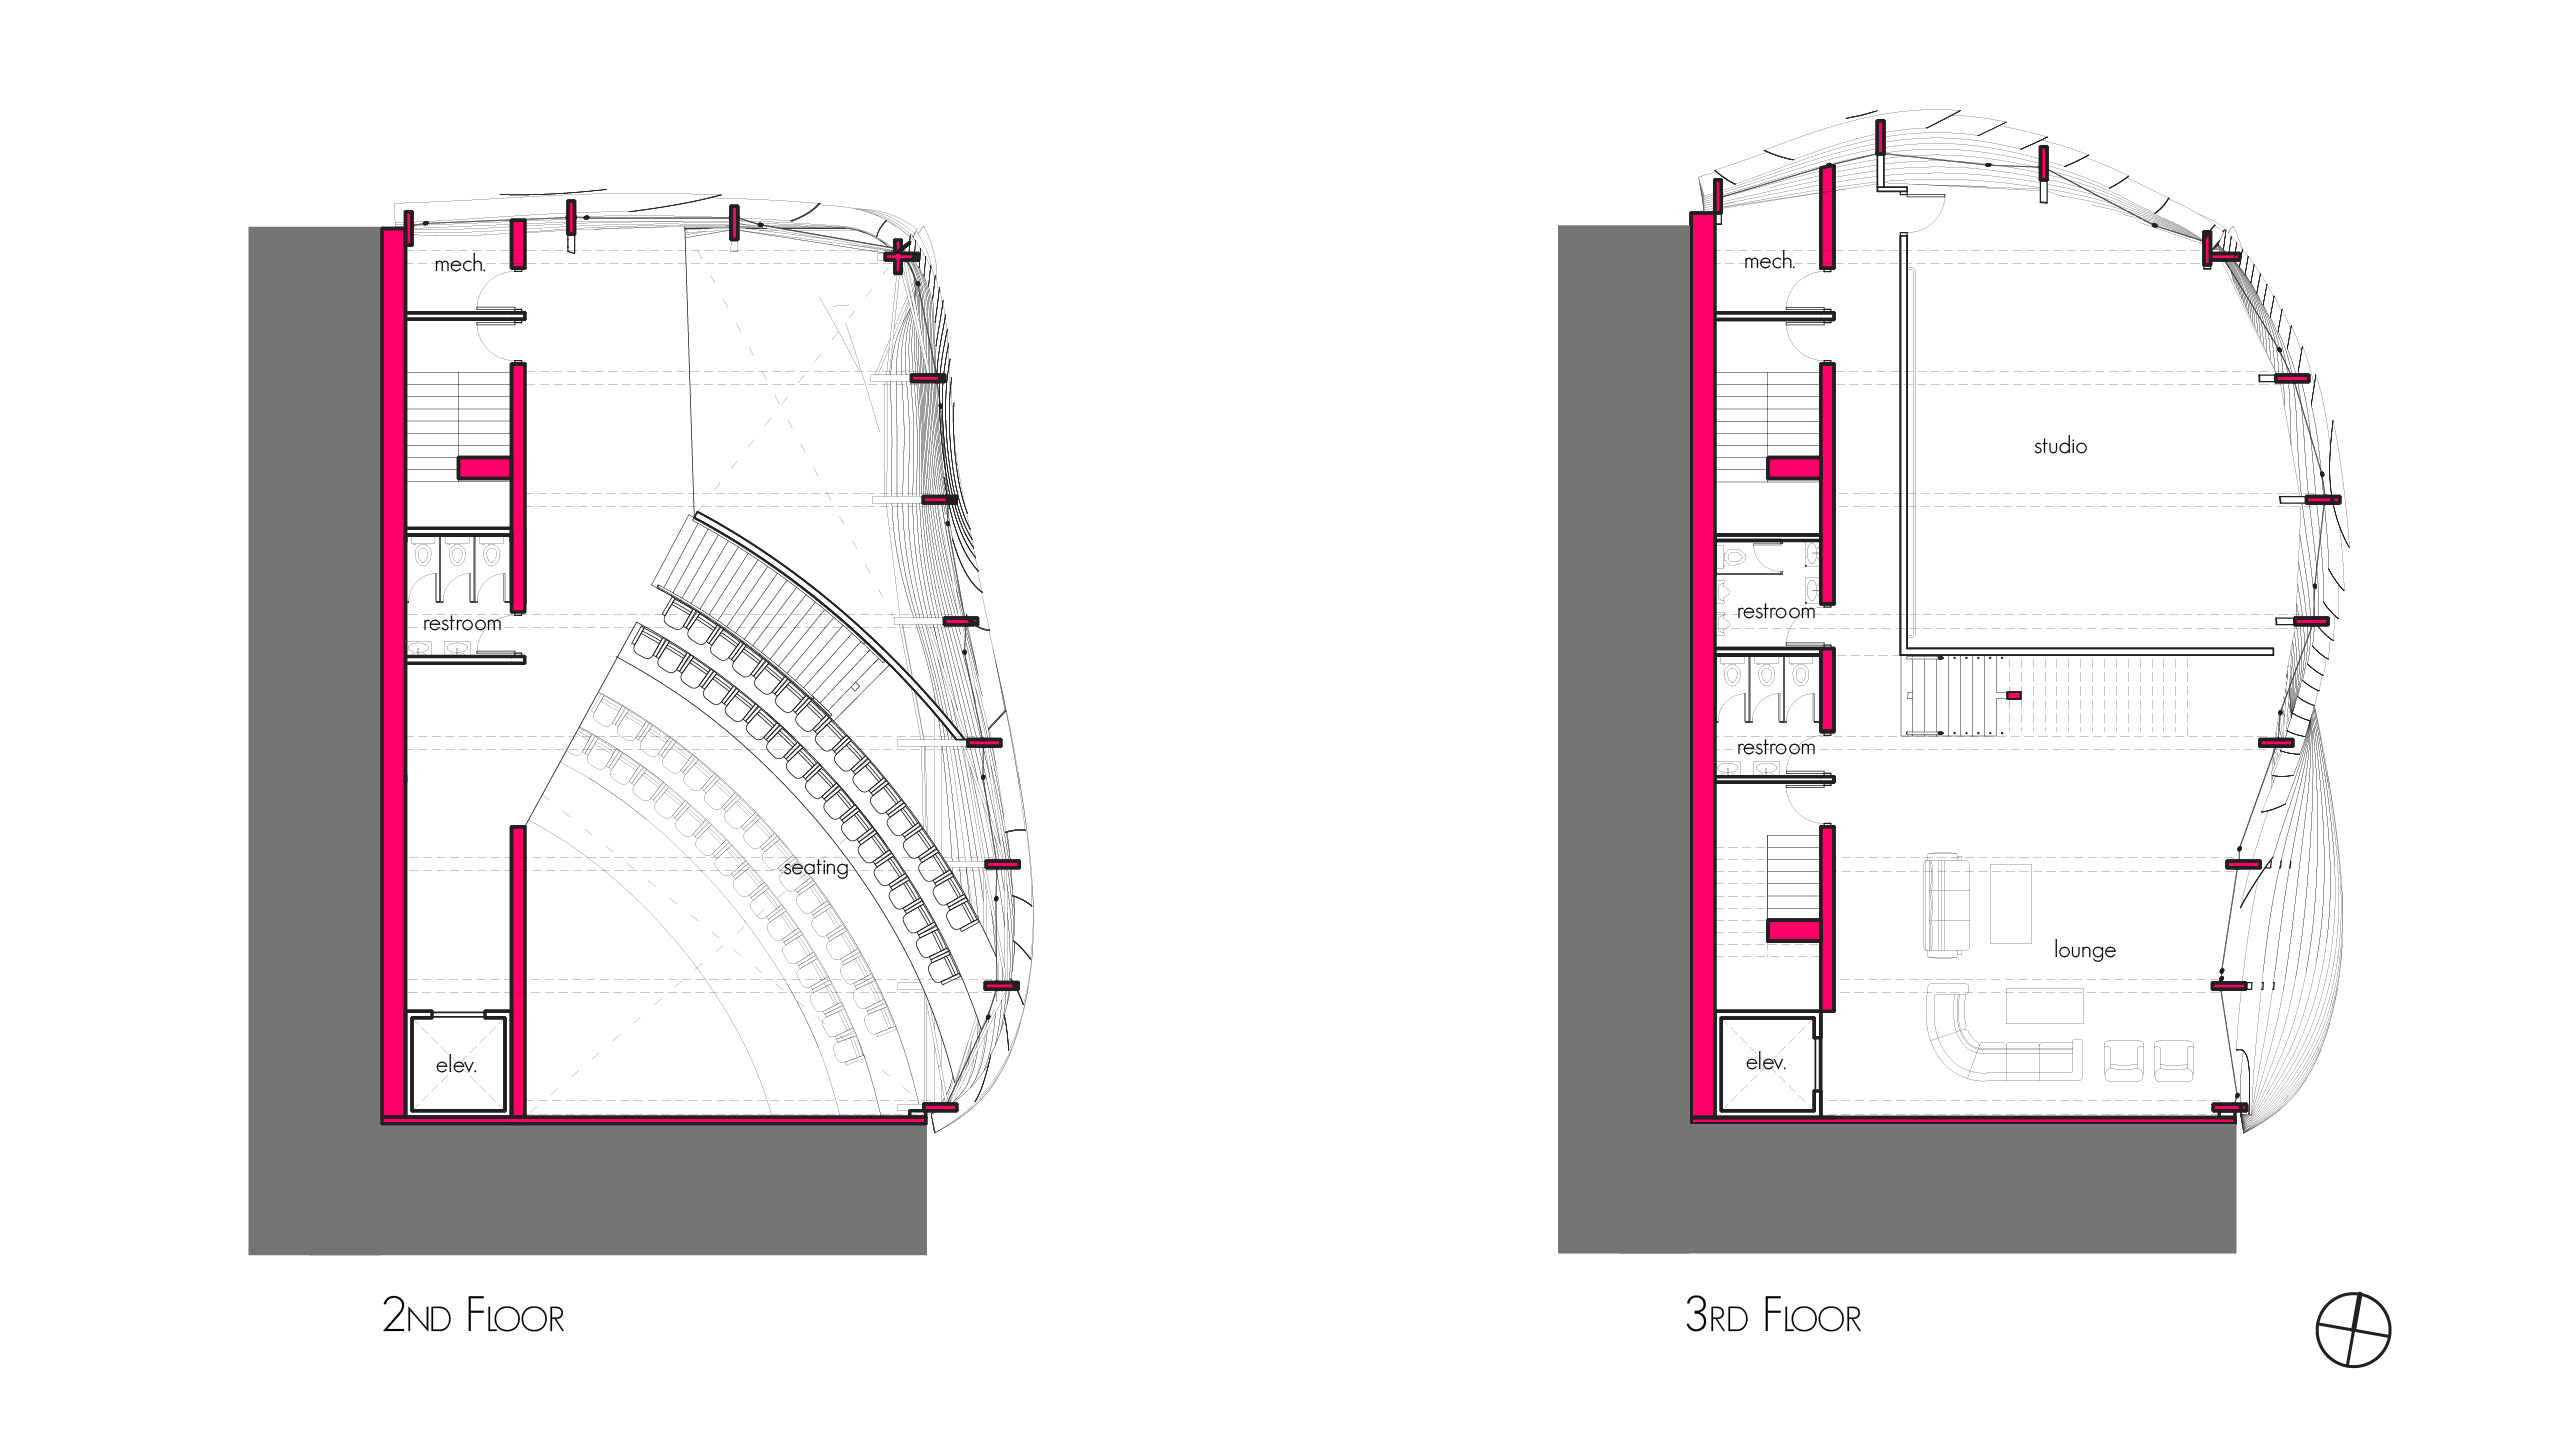 Plans - Second Floor and Third Floor